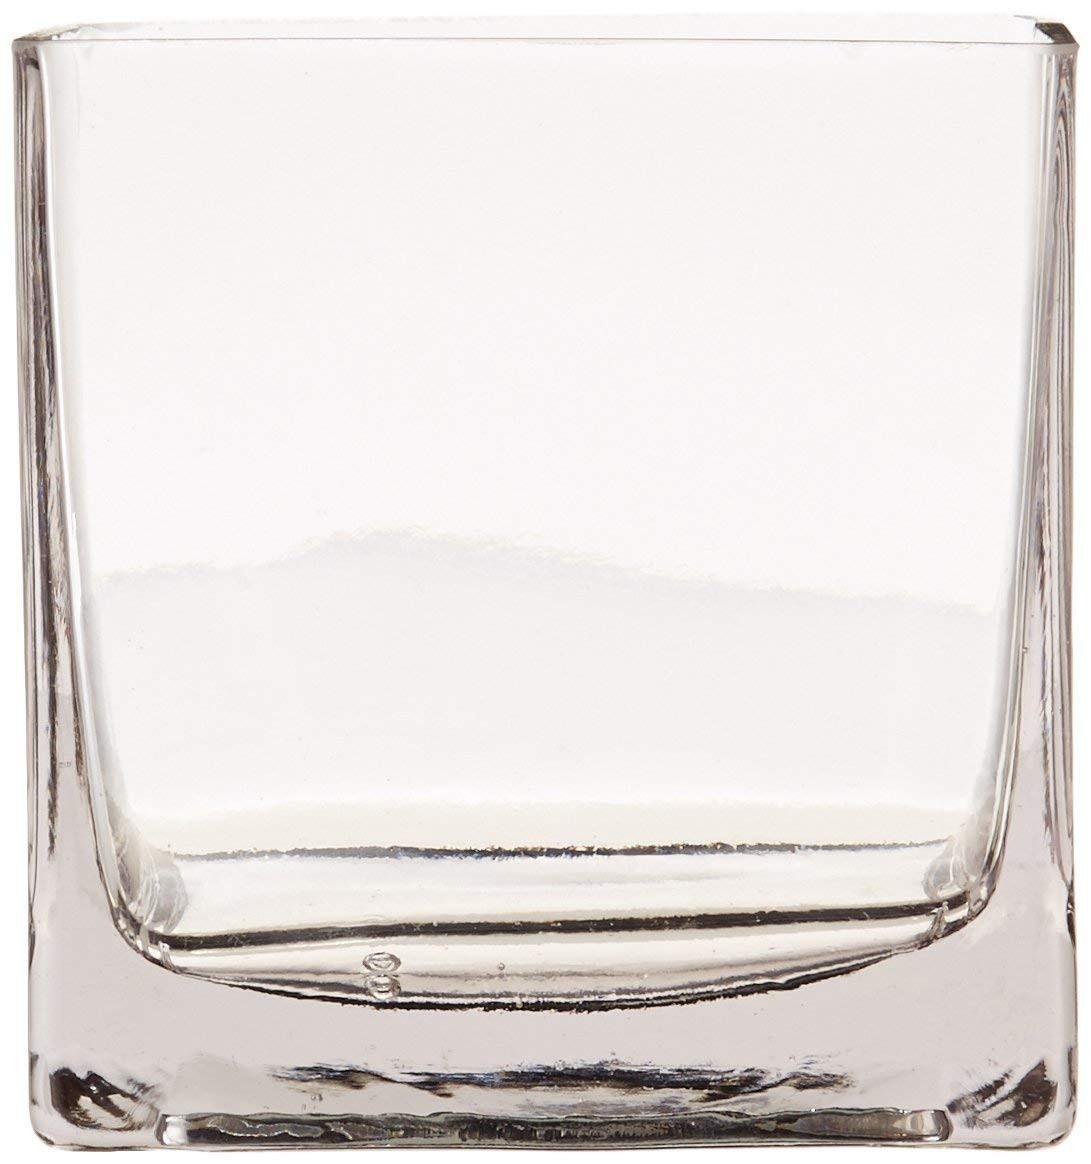 glass bubble wall vase of buy cys excel 12pc clear square glass vase cube 5 inch 5 x 5 x 5 inside buy cys excel 12pc clear square glass vase cube 5 inch 5 x 5 x 5 twelve vases online at low